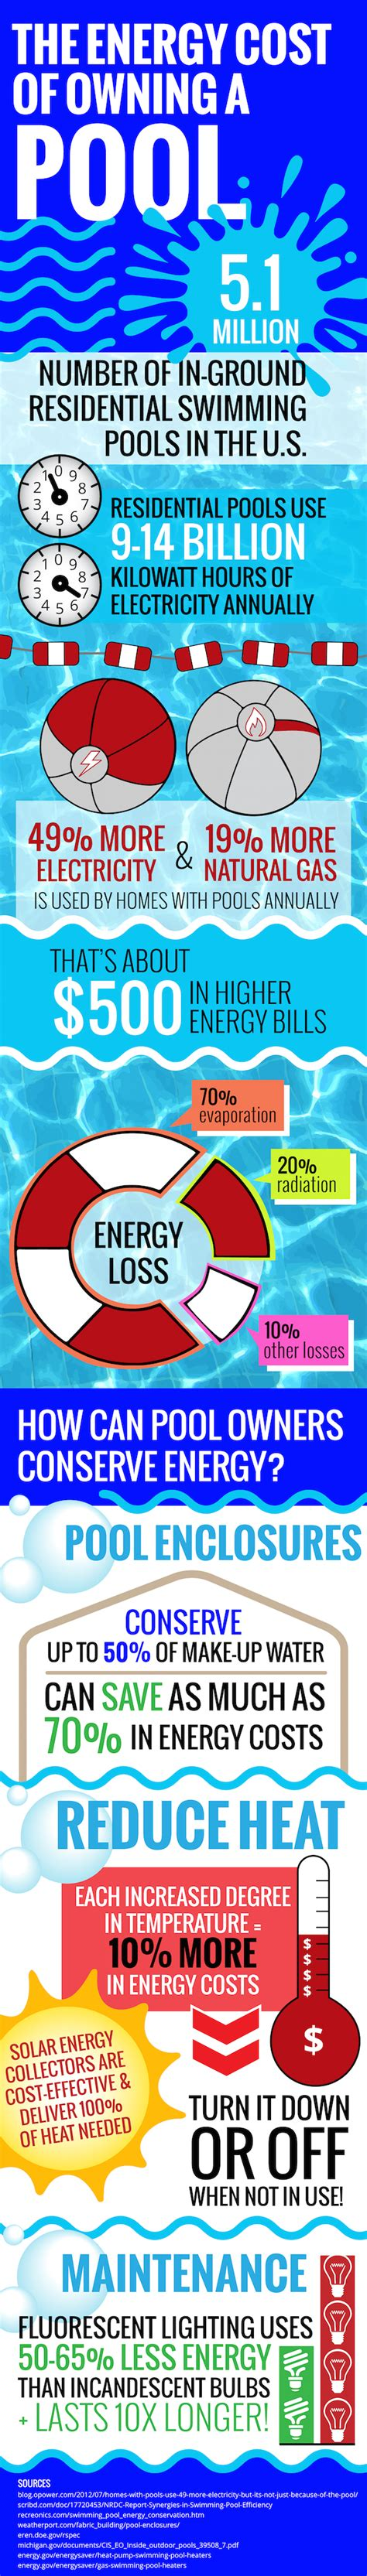 average cost of owning a energy costs of owning a pool weatherport